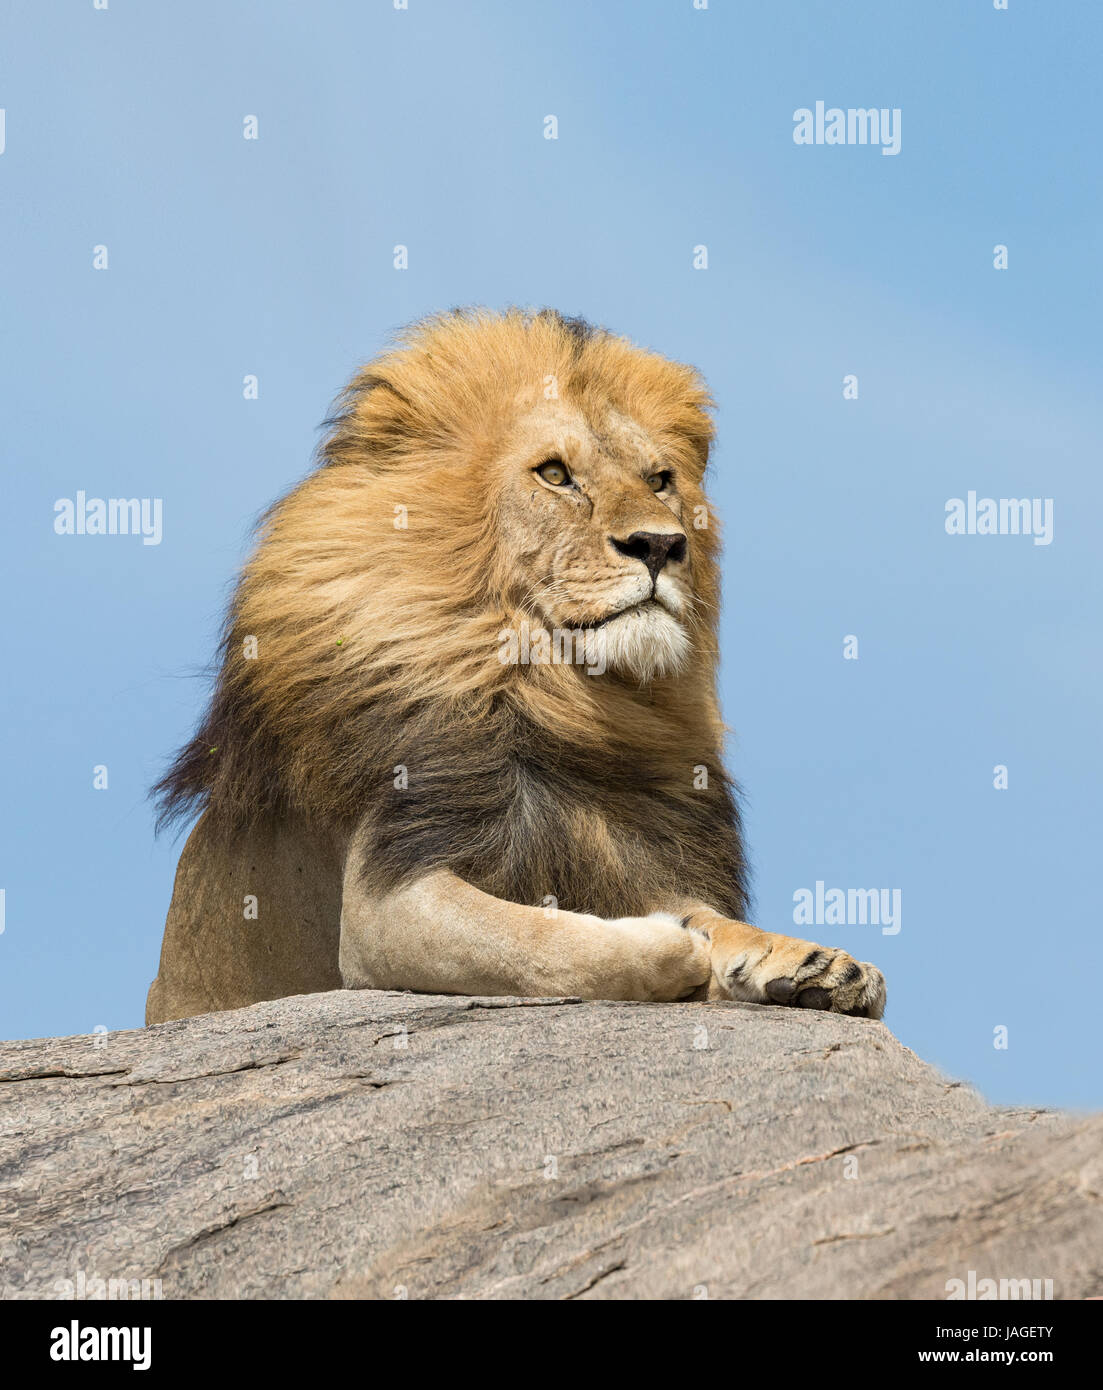 Portrait of a large male Lion on top of a rock in Tanzania's Serengeti National Park - Stock Image